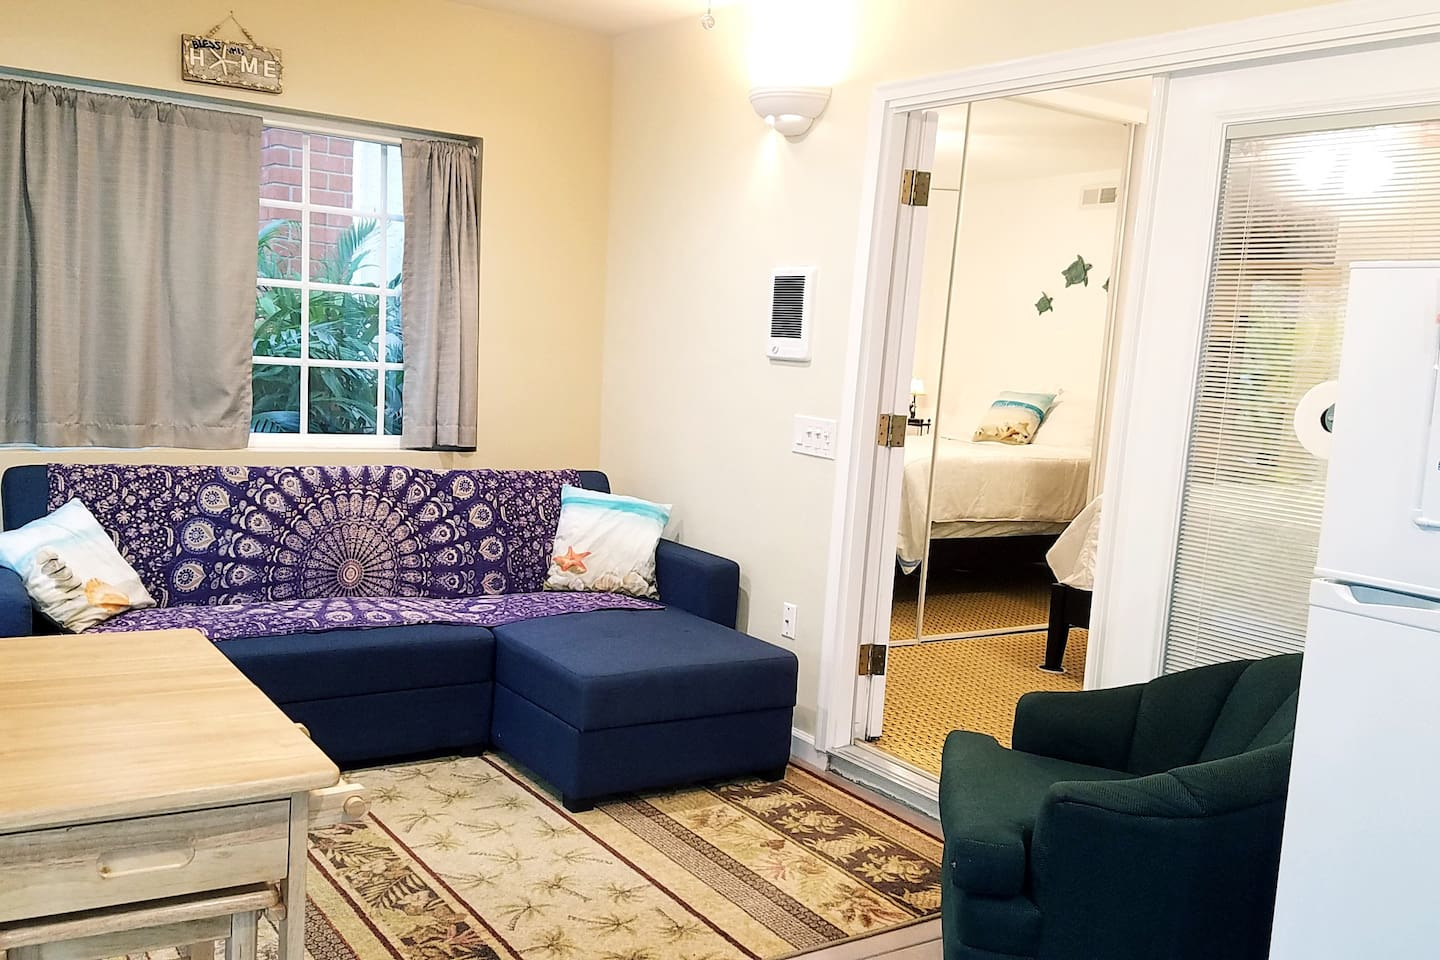 Quaint living room/kitchenette area opens to bedroom thru glassed French doors.